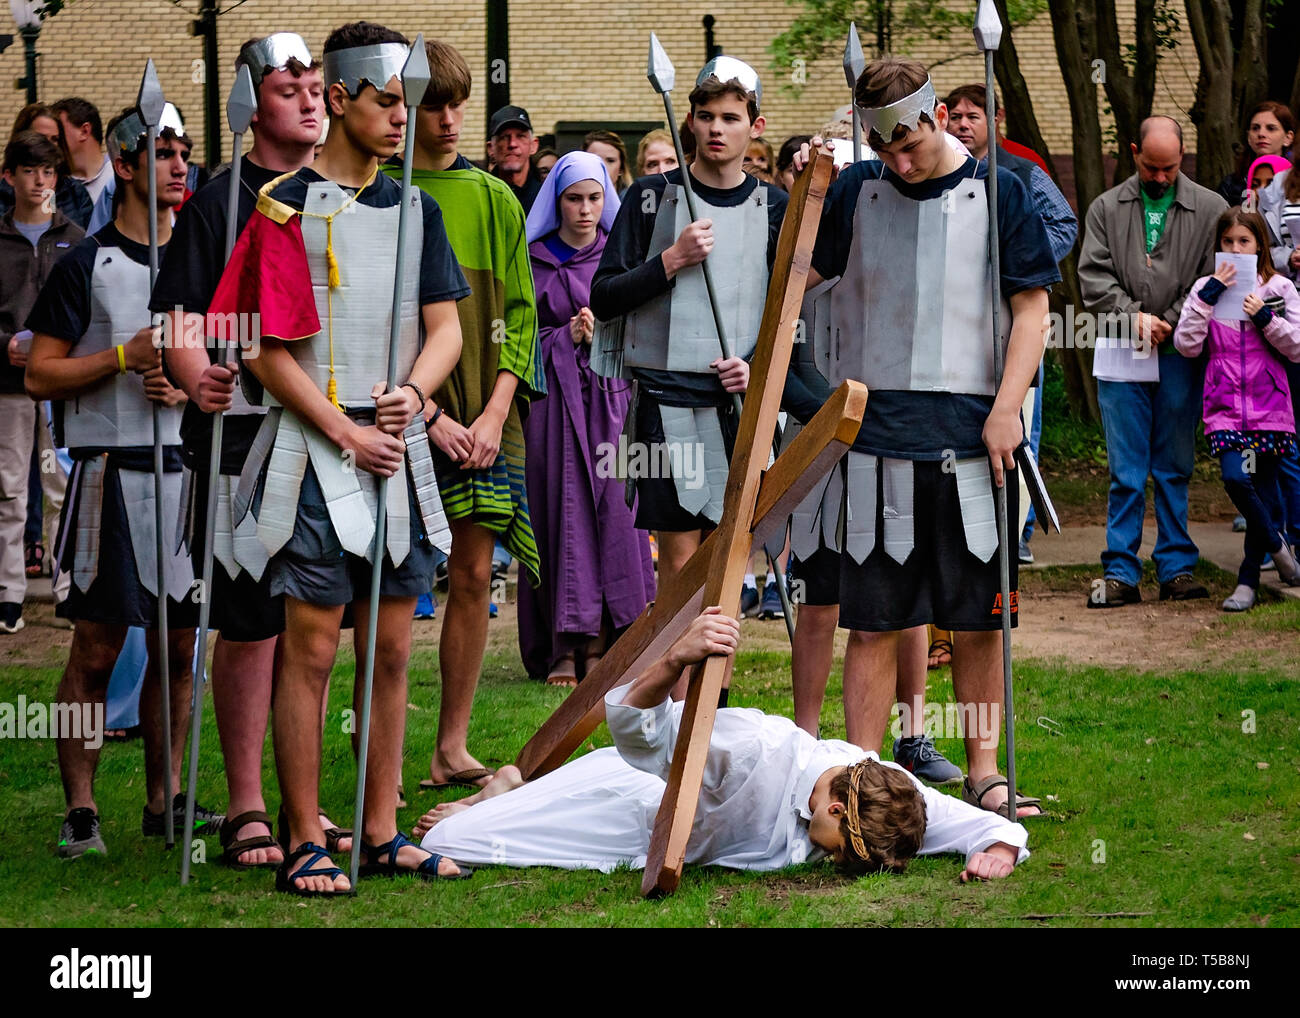 Members of the St. Dominic Youth Group re-enact the Stations of the Cross during a Good Friday procession, April 19, 2019, in Mobile, Alabama. - Stock Image